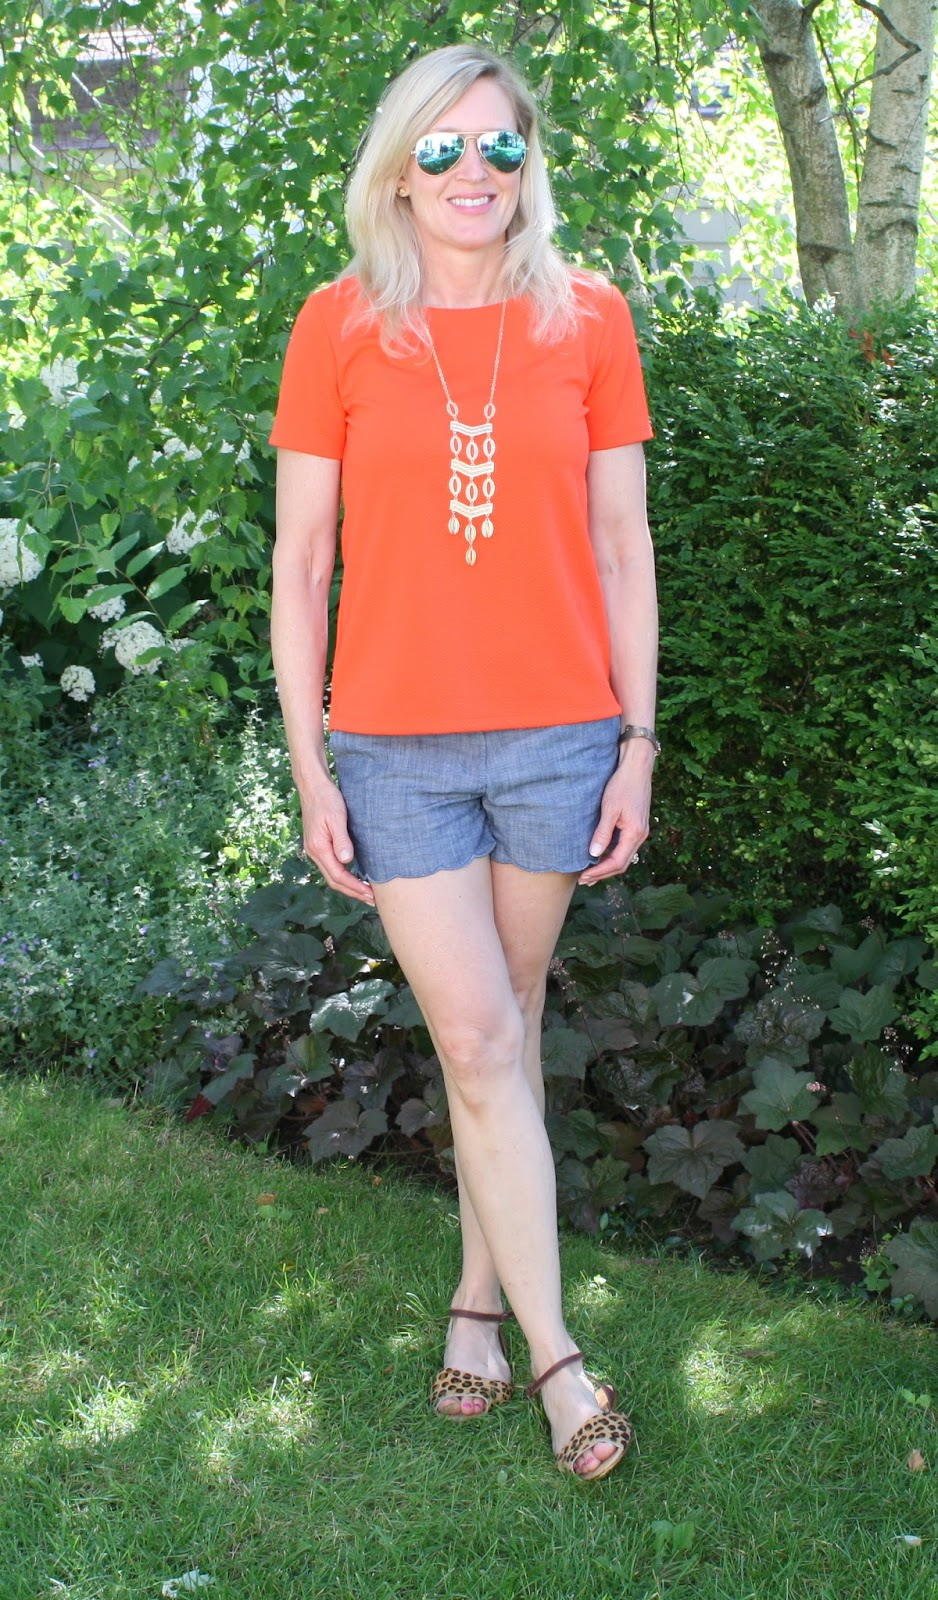 e32b22297d0ab Scalloped Shorts + a Giveaway! - Doused in Pink | Chicago Style Blog